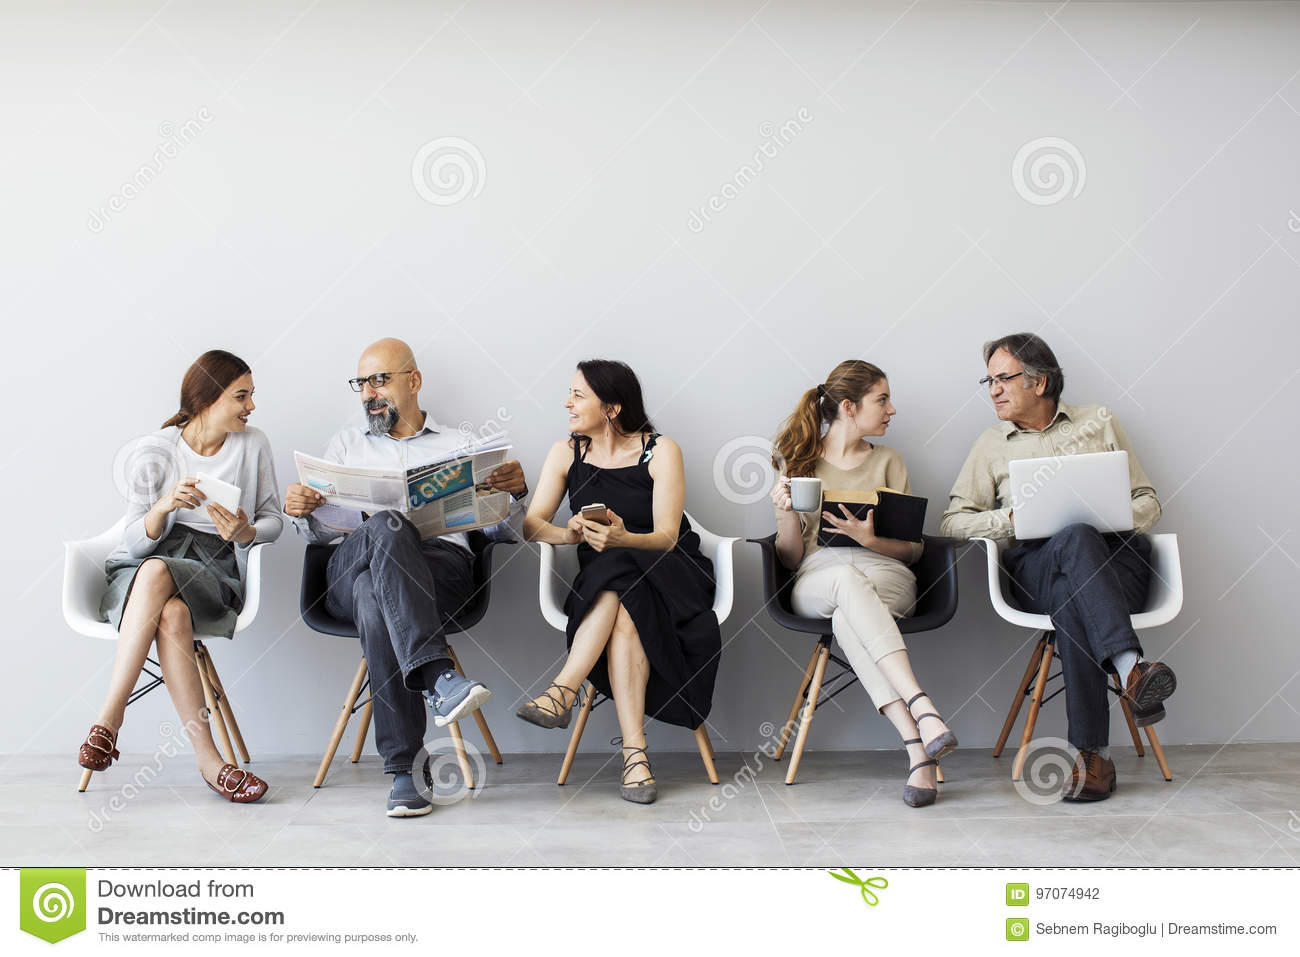 Group of people sitting on chairs